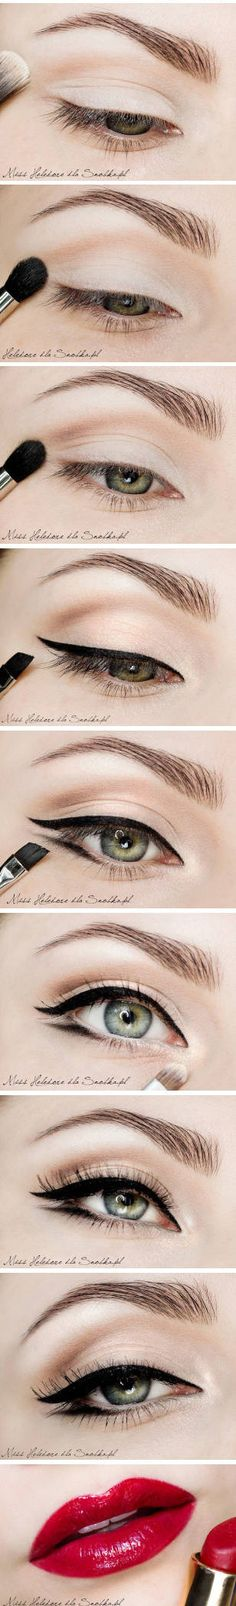 Tutorial eyrlinet